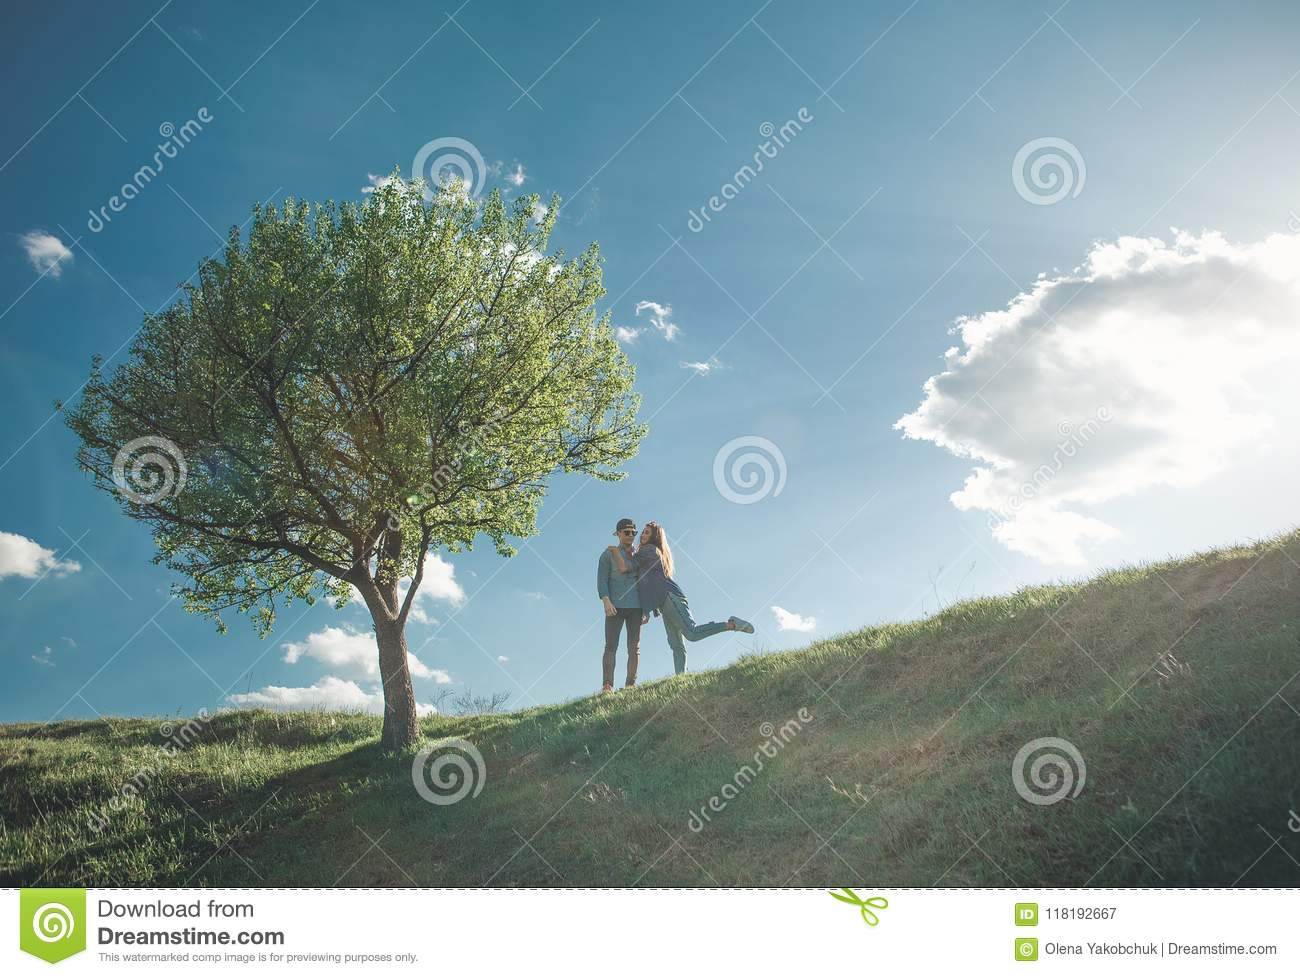 Playful Girl With Young Man By Tree Stock Image Image Of Female